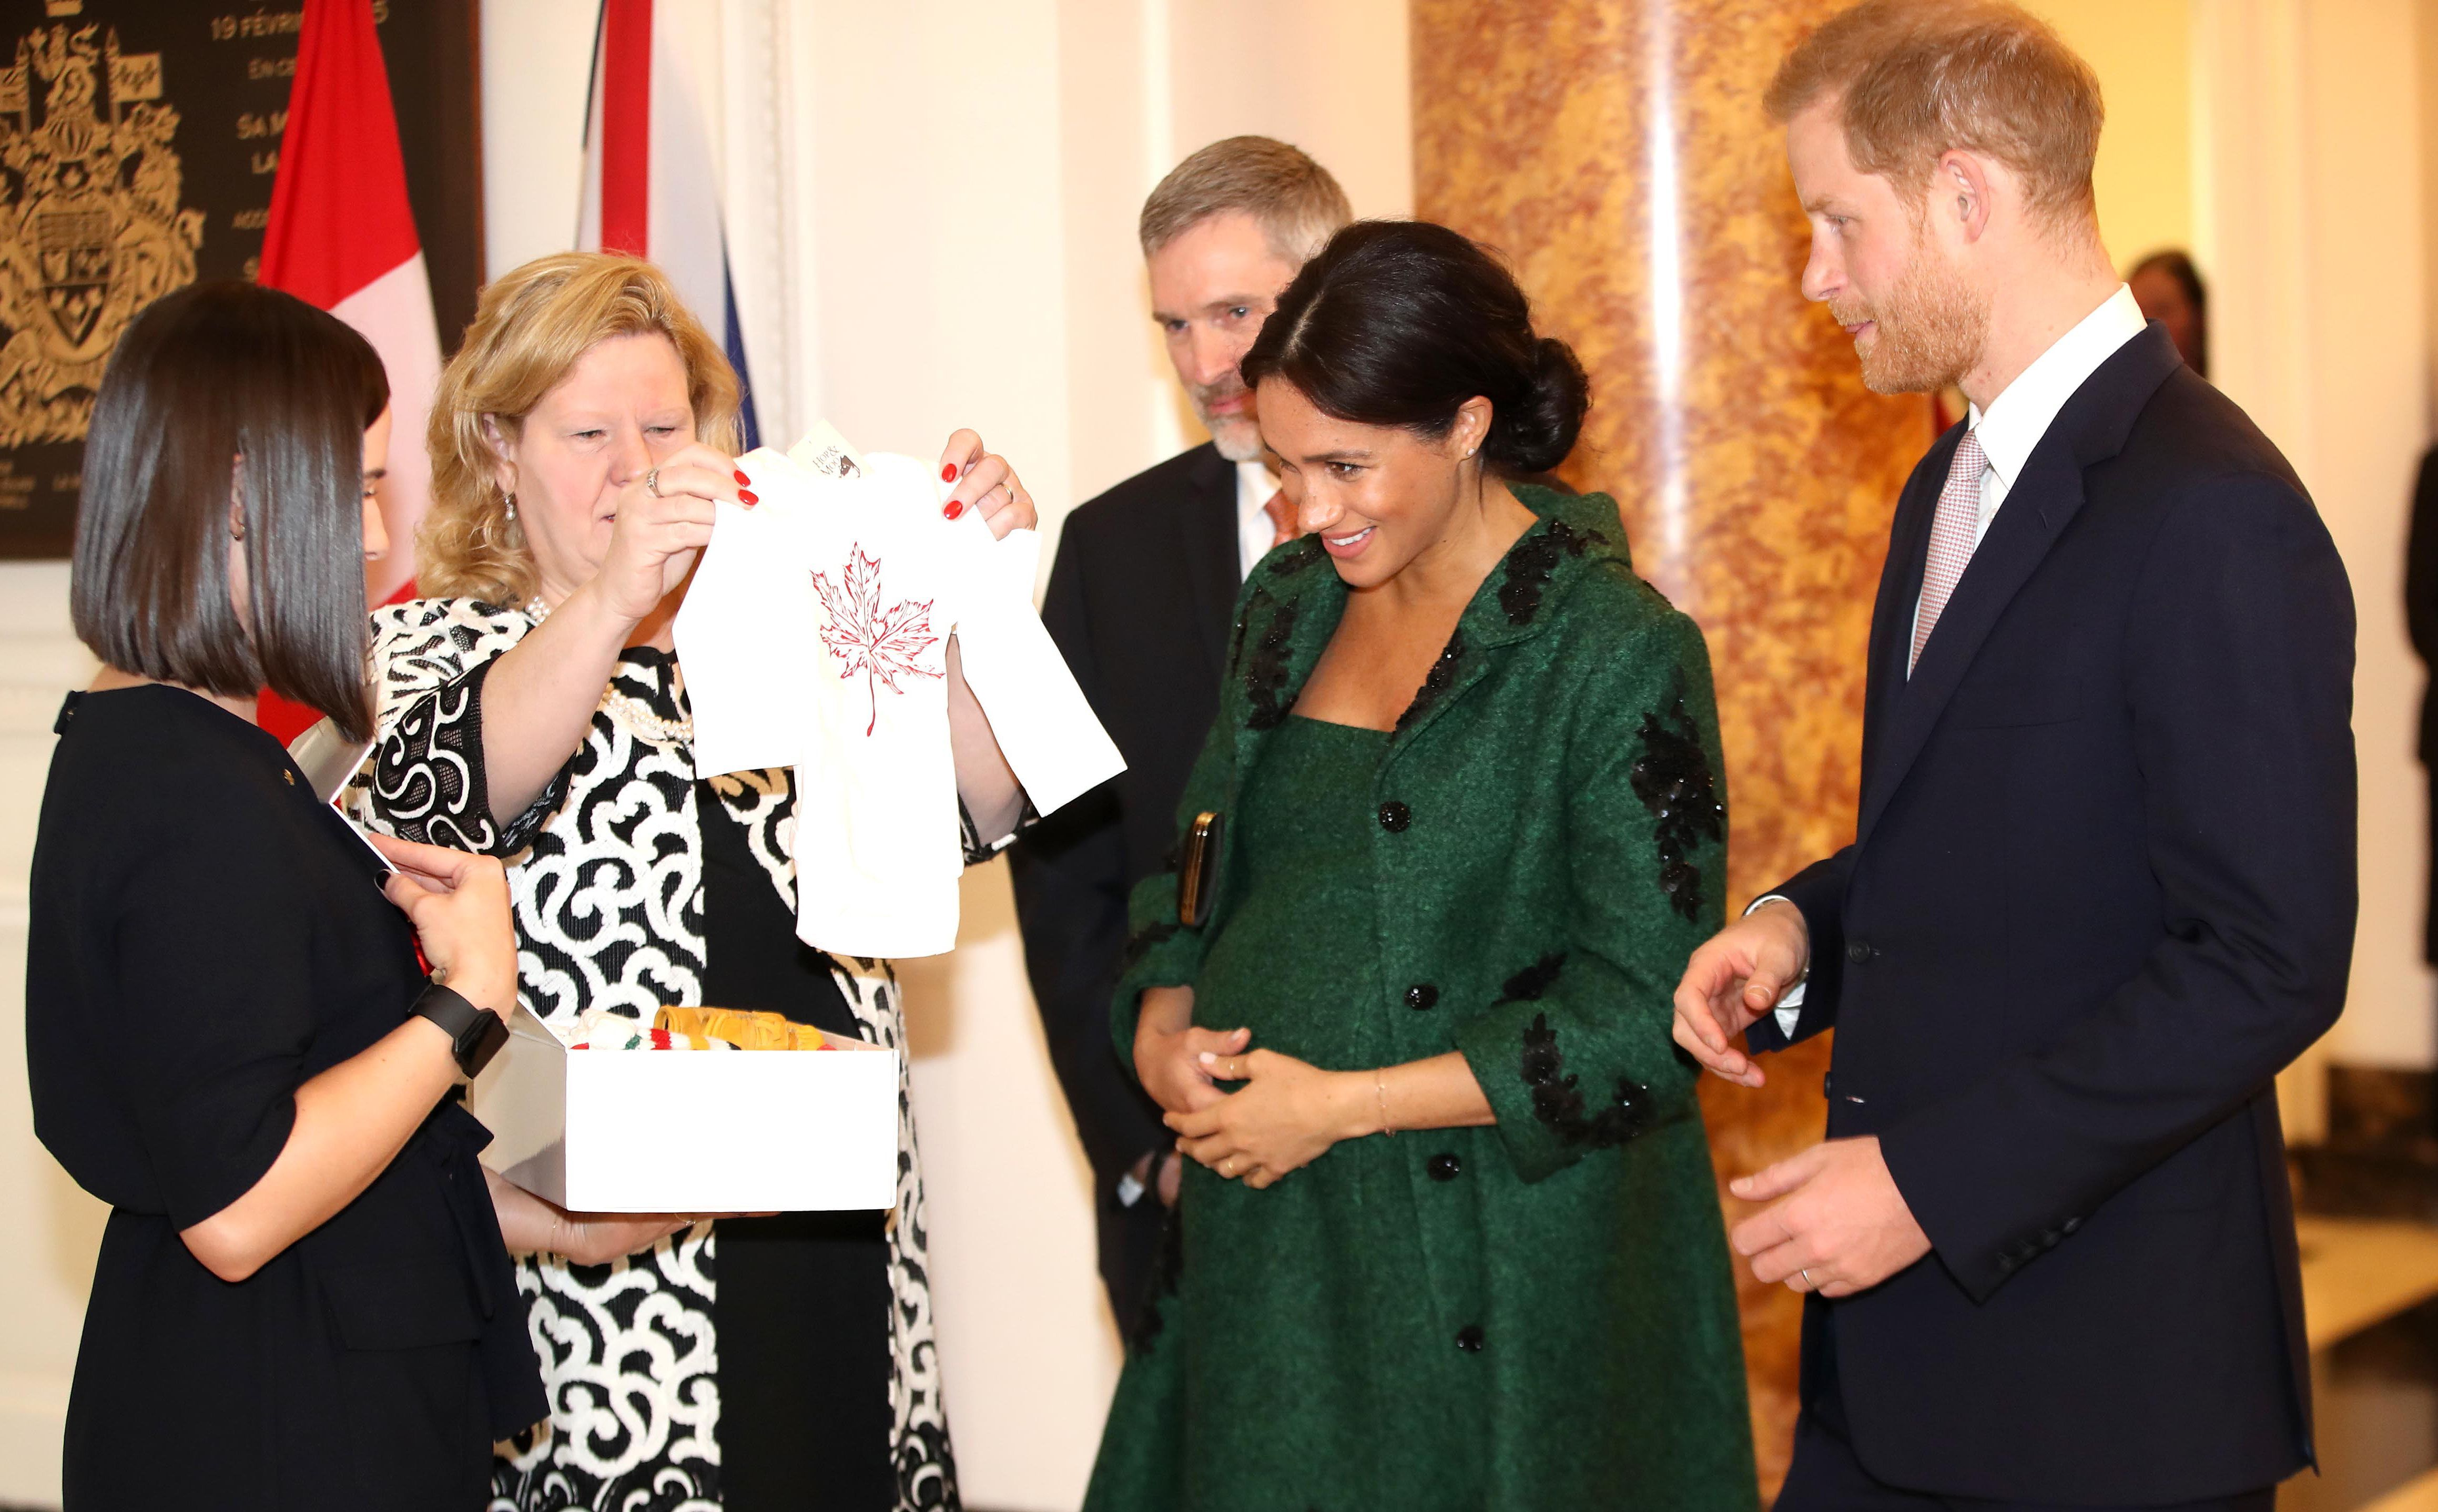 Harry and Meghan received baby gifts from the Canadian High Commissioner on Commonwealth Day in March 2019.